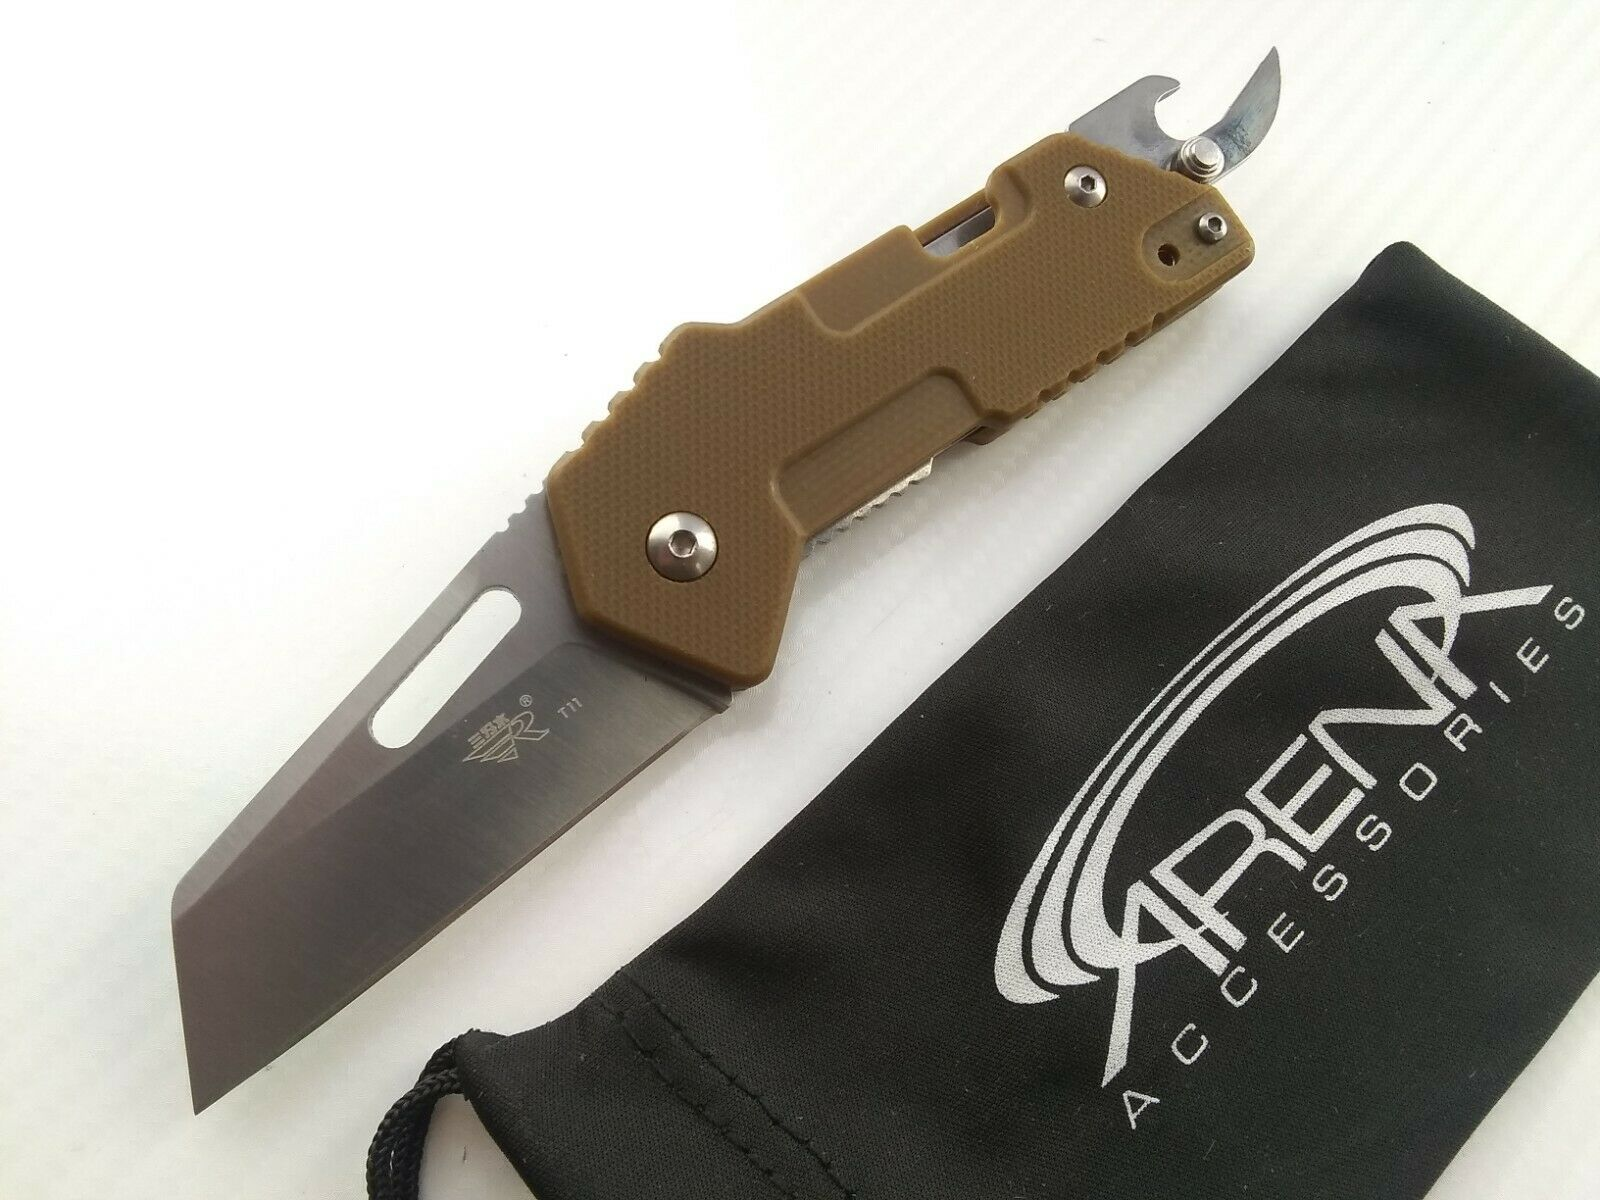 Sanrenmu SRM GA-T11 Multi-Tool Pocket Knife 8Cr14 Blade Brown G10 Handle Can Bottle Opener